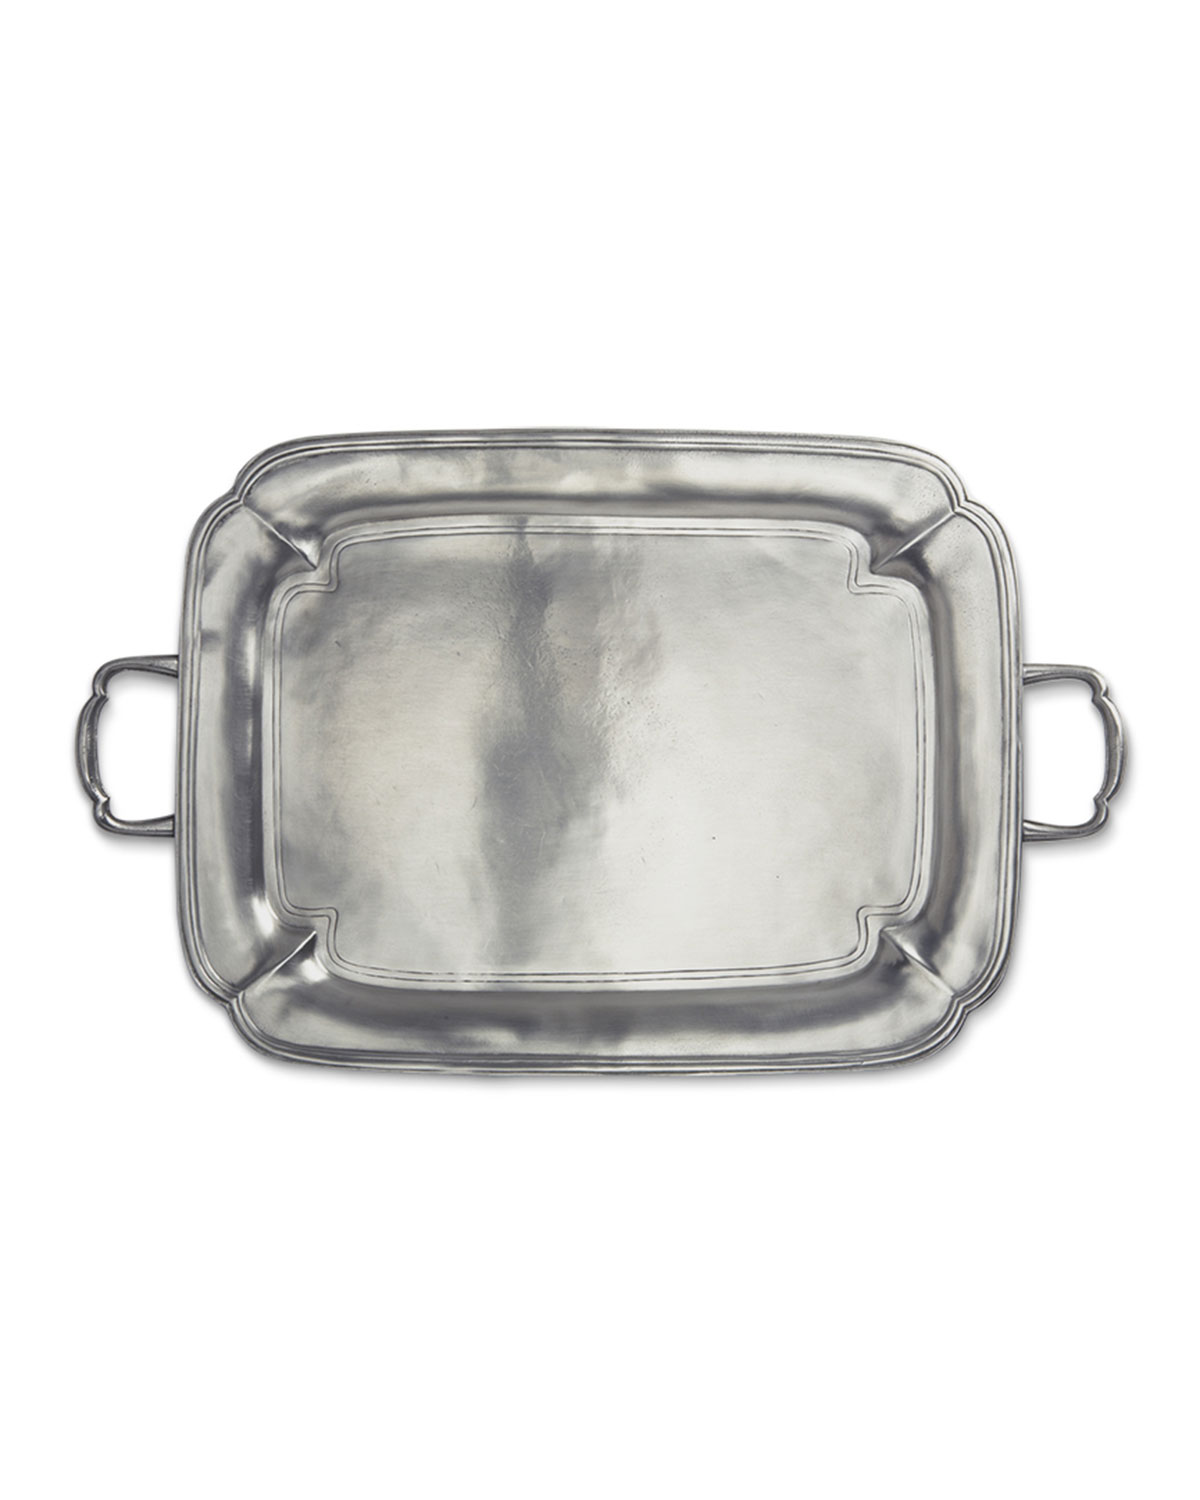 Match Clothing PARMA RECTANGLE TRAY WITH HANDLES